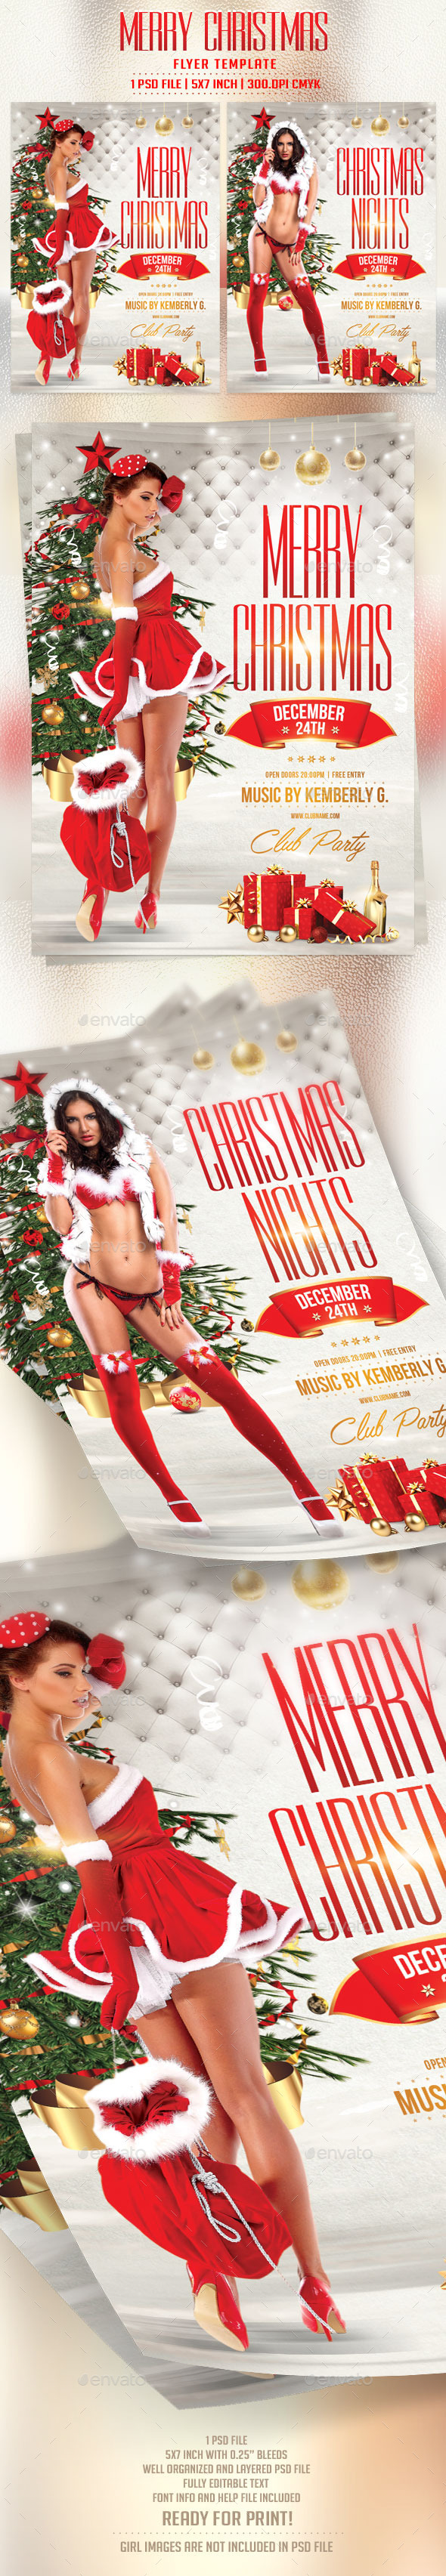 Merry Christmas Flyer Template - Holidays Events